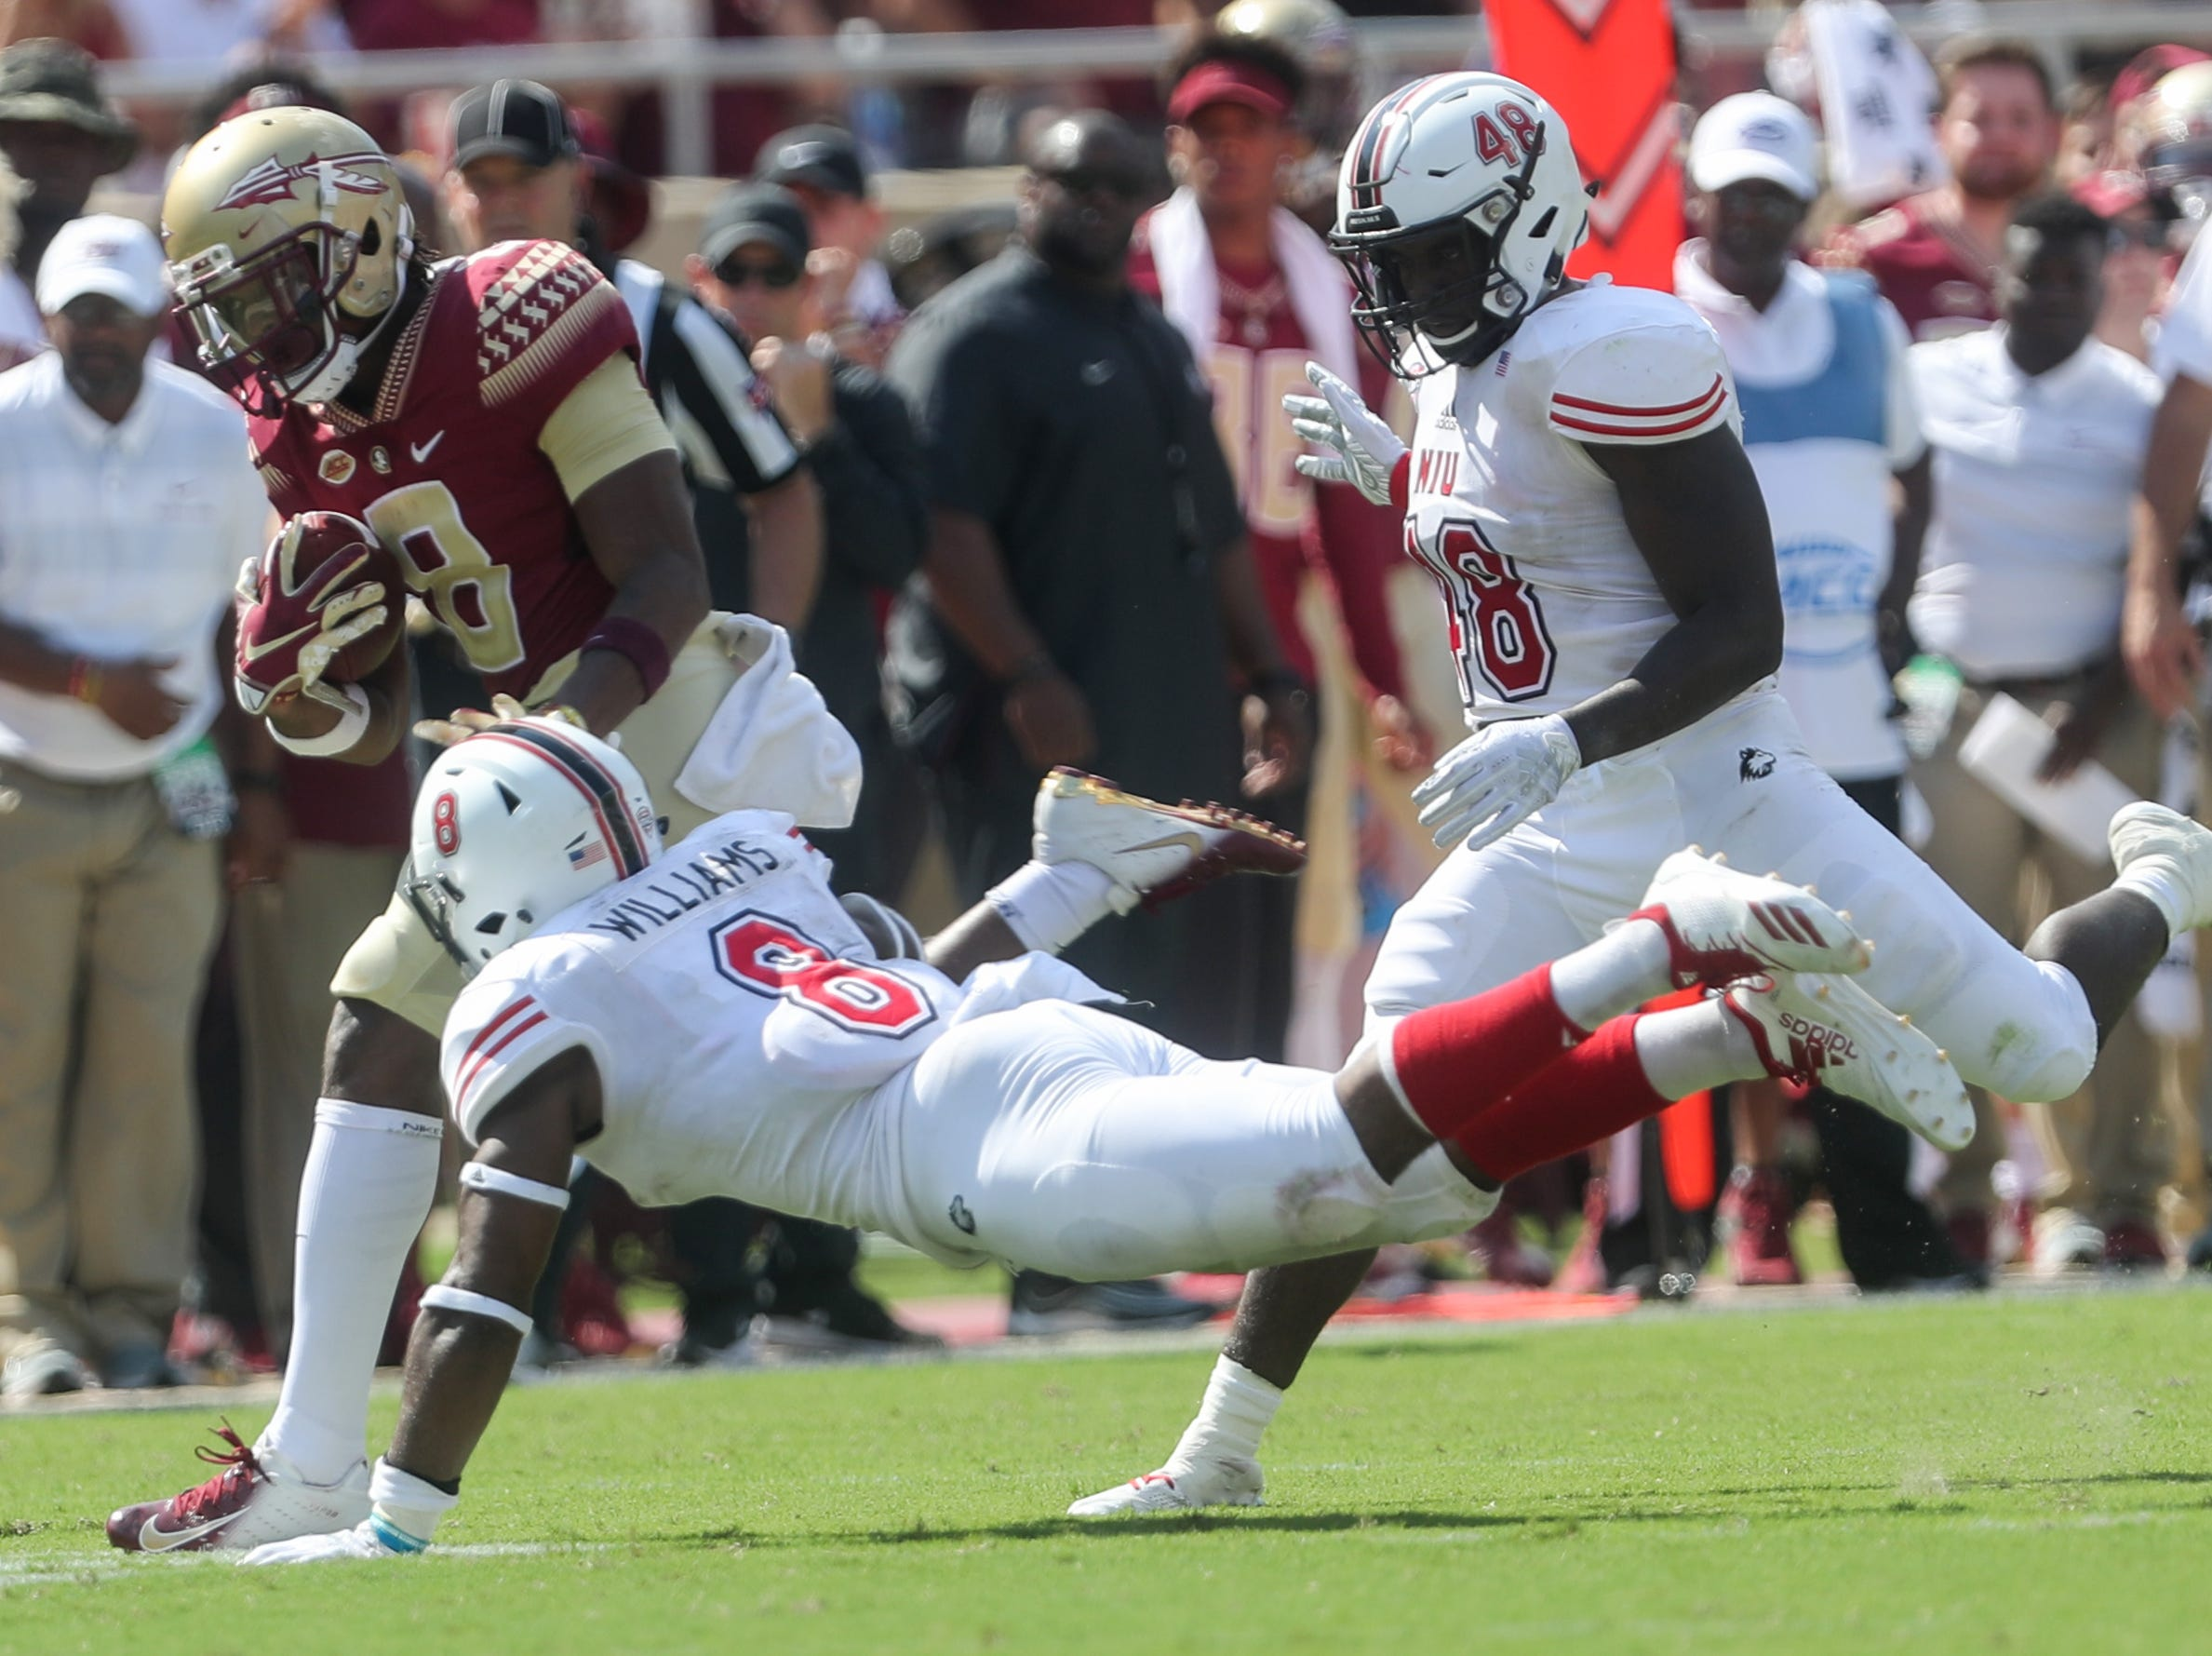 Florida State Seminoles wide receiver Nyqwan Murray (8) gets tackled by Northern Illinois Huskies safety Mykelti Williams (8) during a game between the Florida State University Seminoles and the Northern Illinois University Huskies at Doak S. Campbell Stadium in Tallahassee, Fla. Saturday, September 22, 2018.